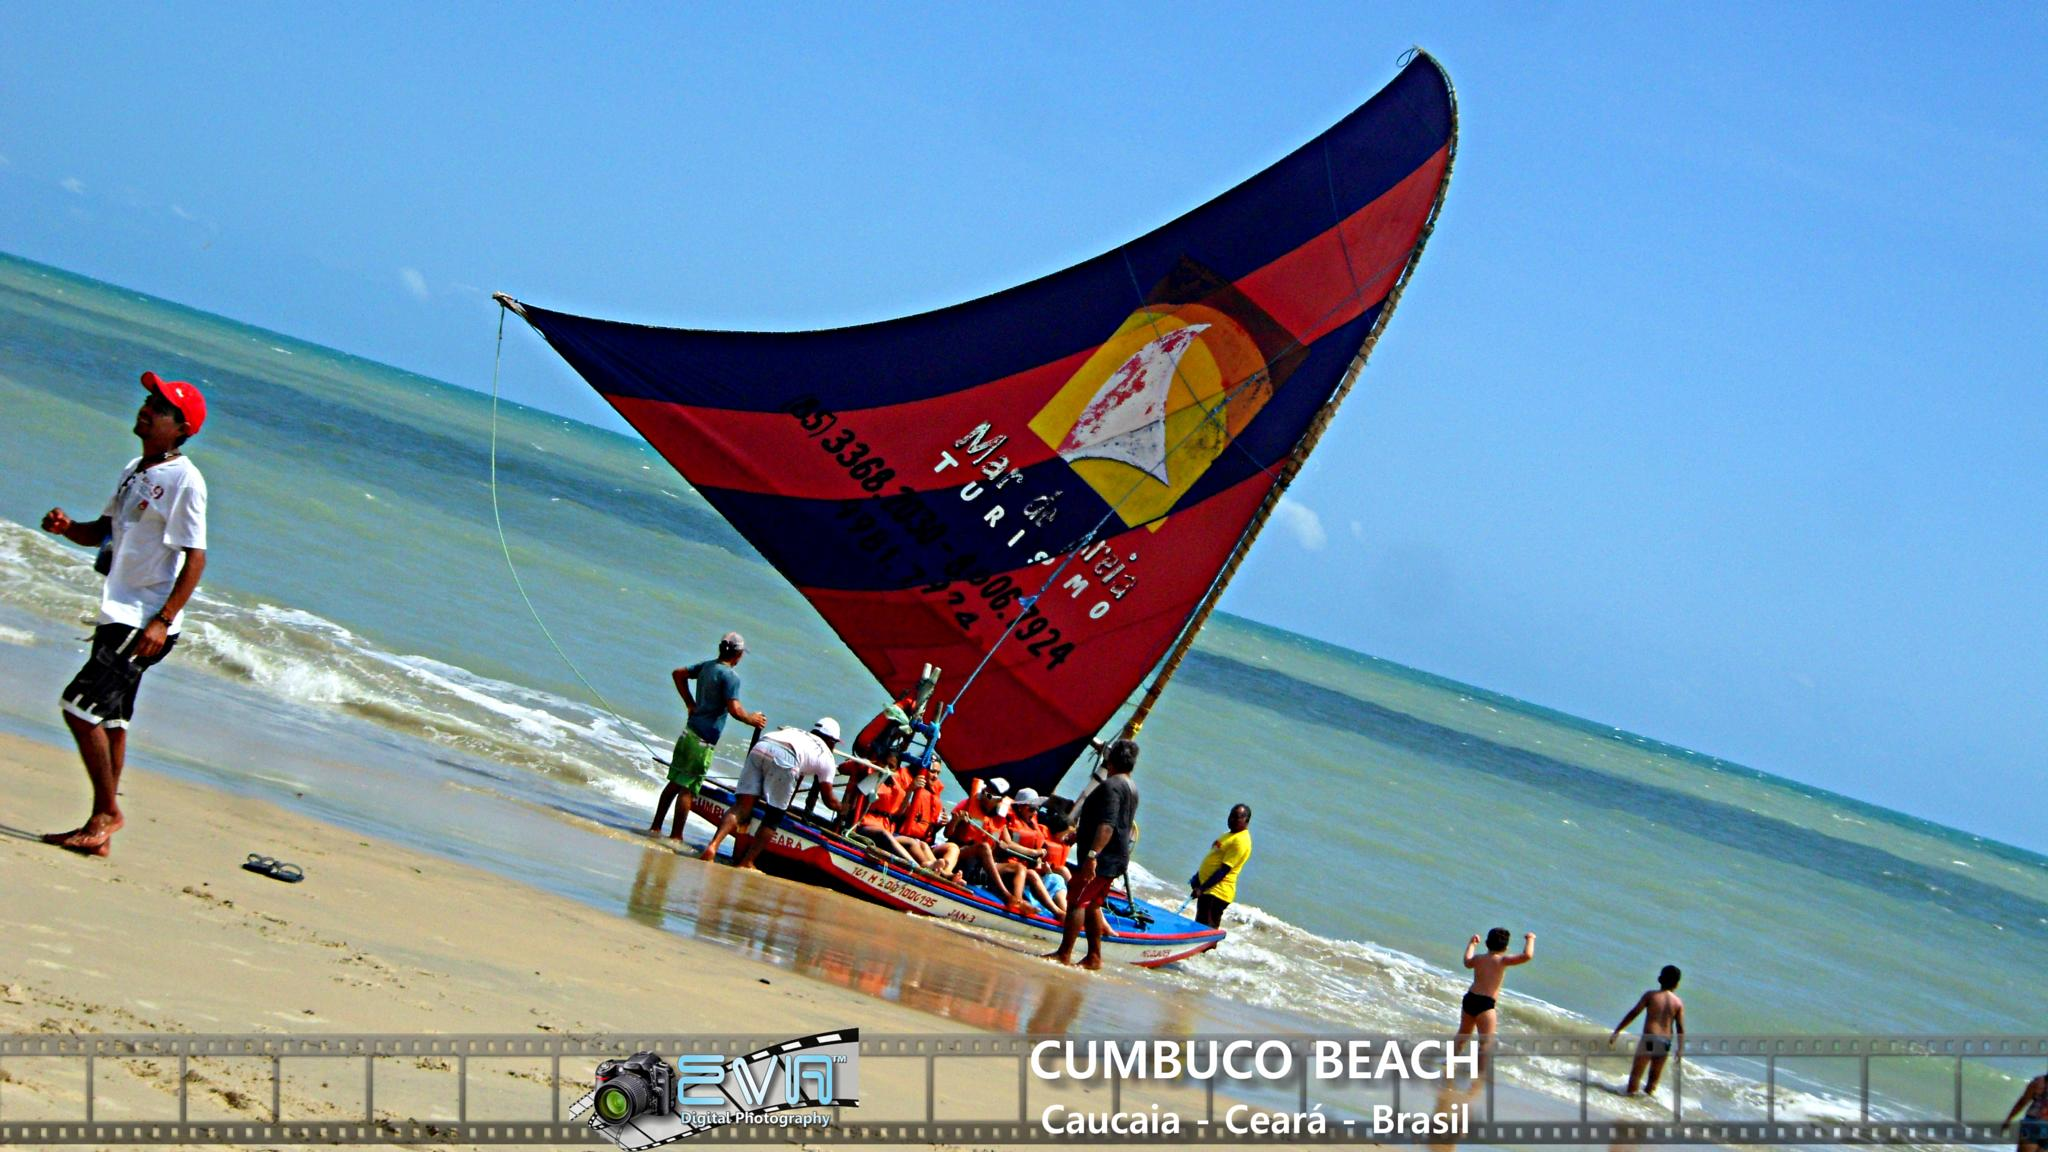 Cumbuco - Ceará - Brazil by Alessandro Sousa